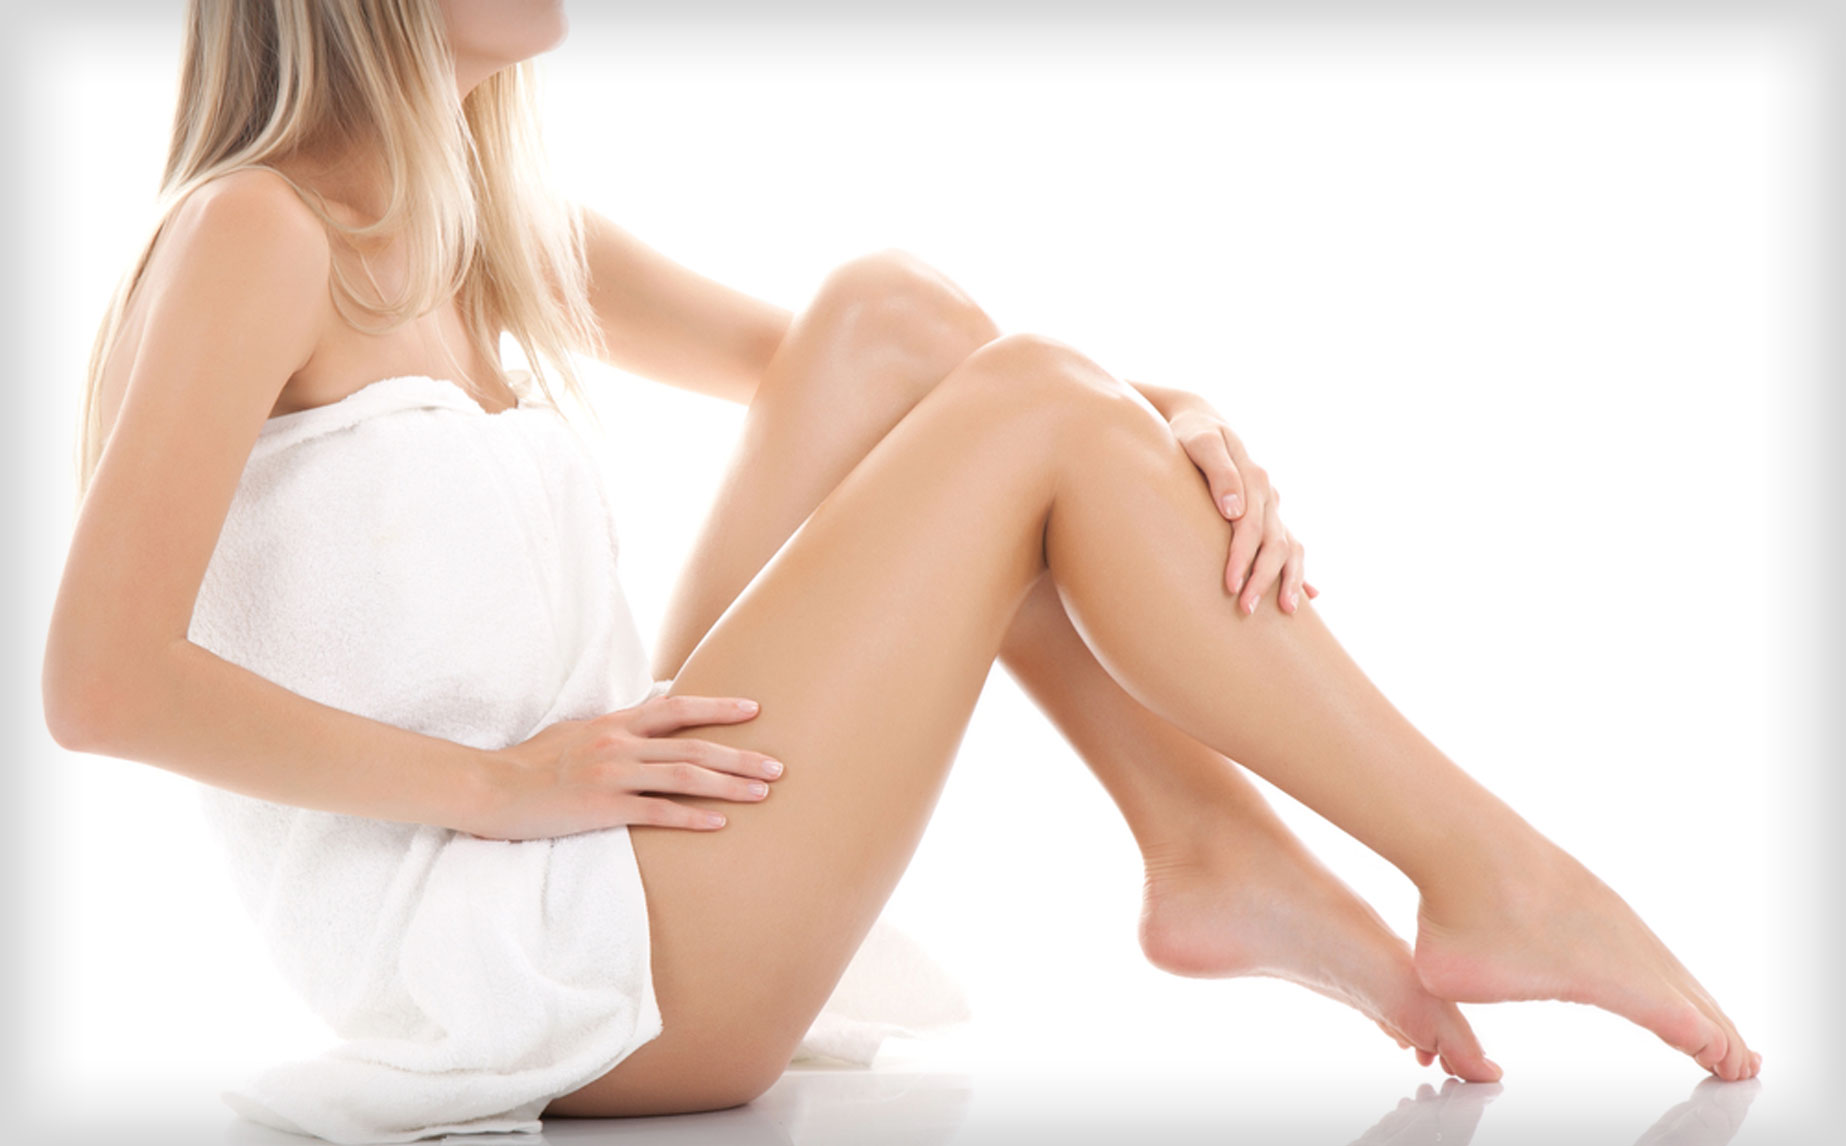 Leg Waxing - Lower Body1/2 Leg Lower (including knees & feet) £181/2 Leg Upper £203/4 Leg (including knees & feet) £24Full Leg including feet £33Full Leg & Basic Bikini £40Full body Wax £100Full body & intimate bikini £110Upper BodyUnderarm wax £15Forearm (including elbow & hands) £17Full arm (including shoulders & hands) £25Back wax lower £17Back wax full (including shoulders) £25Chest including nipples £17Stomach (breast bone to bikini) £17